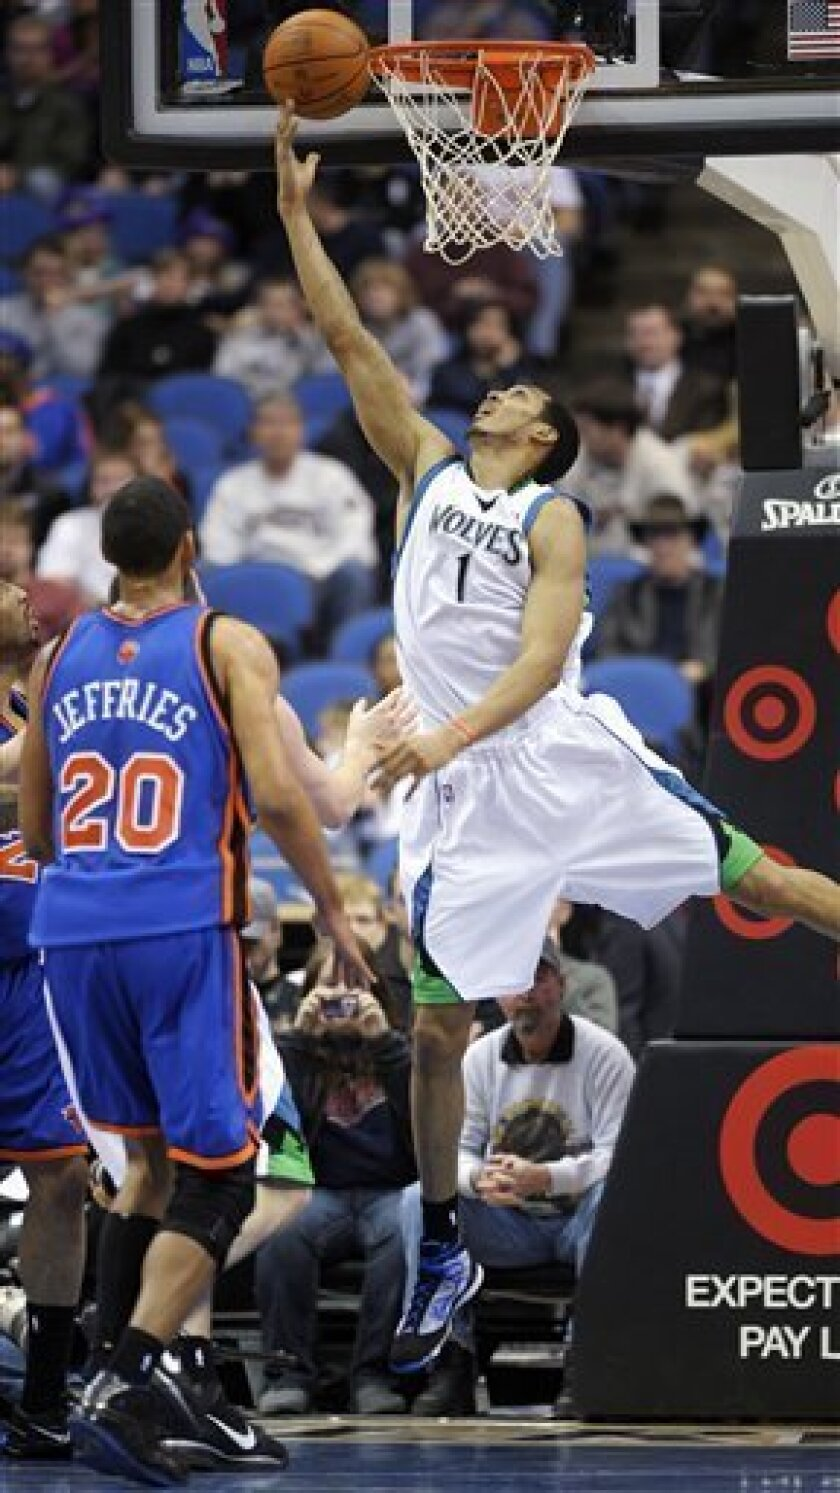 Minnesota Timberwolves center Ryan Hollins (1) goes to the basket as New York Knicks forward Jared Jeffries (20) watches the play during the first quarter of an NBA basketball game Sunday, Jan. 31, 2010, in Minneapolis. (AP Photo/Tom Olmscheid)